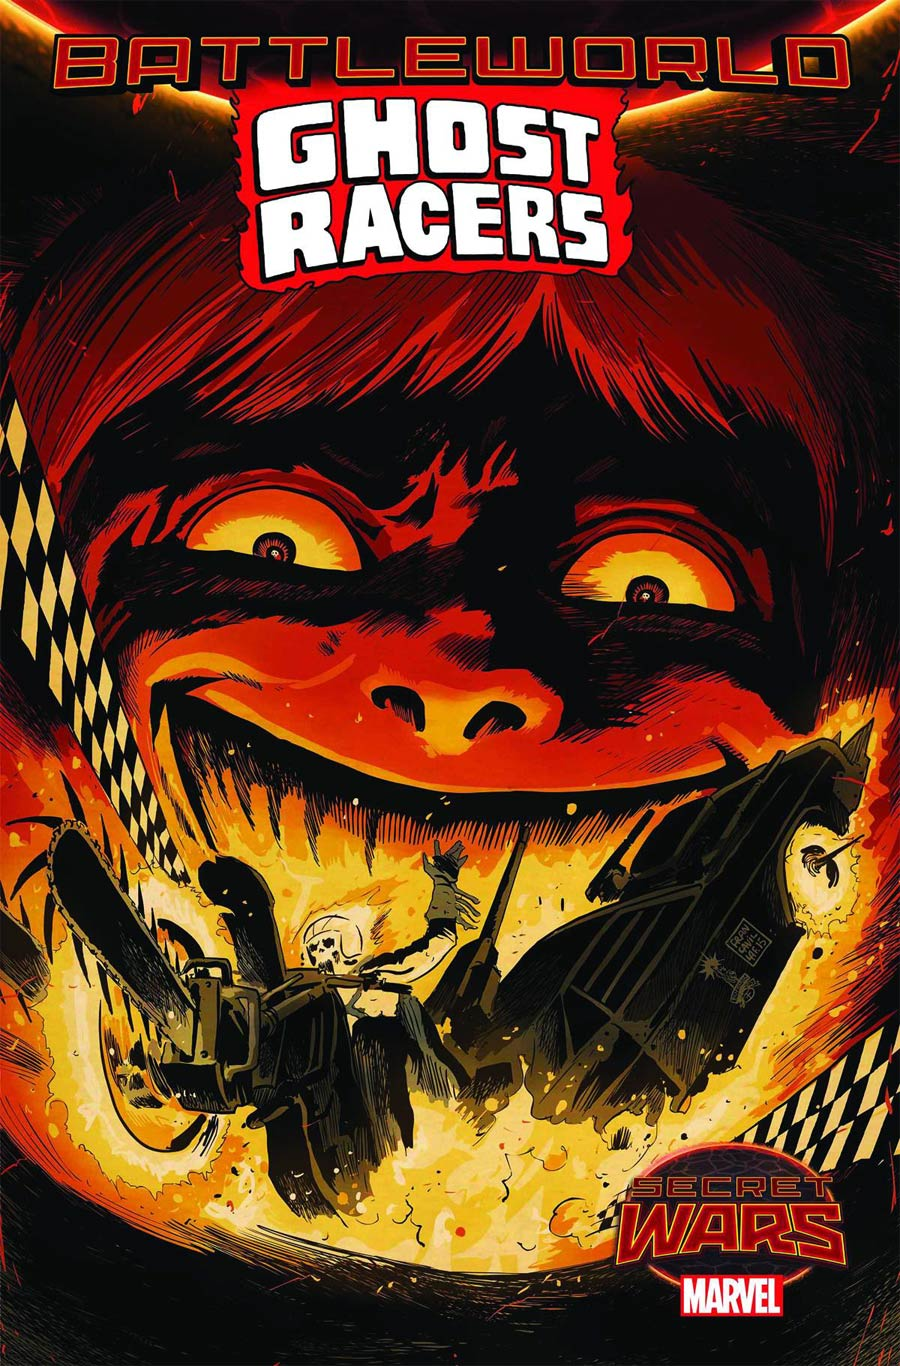 Ghost Racers #2 Cover A Regular Francesco Francavilla Cover (Secret Wars Battleworld Tie-In)